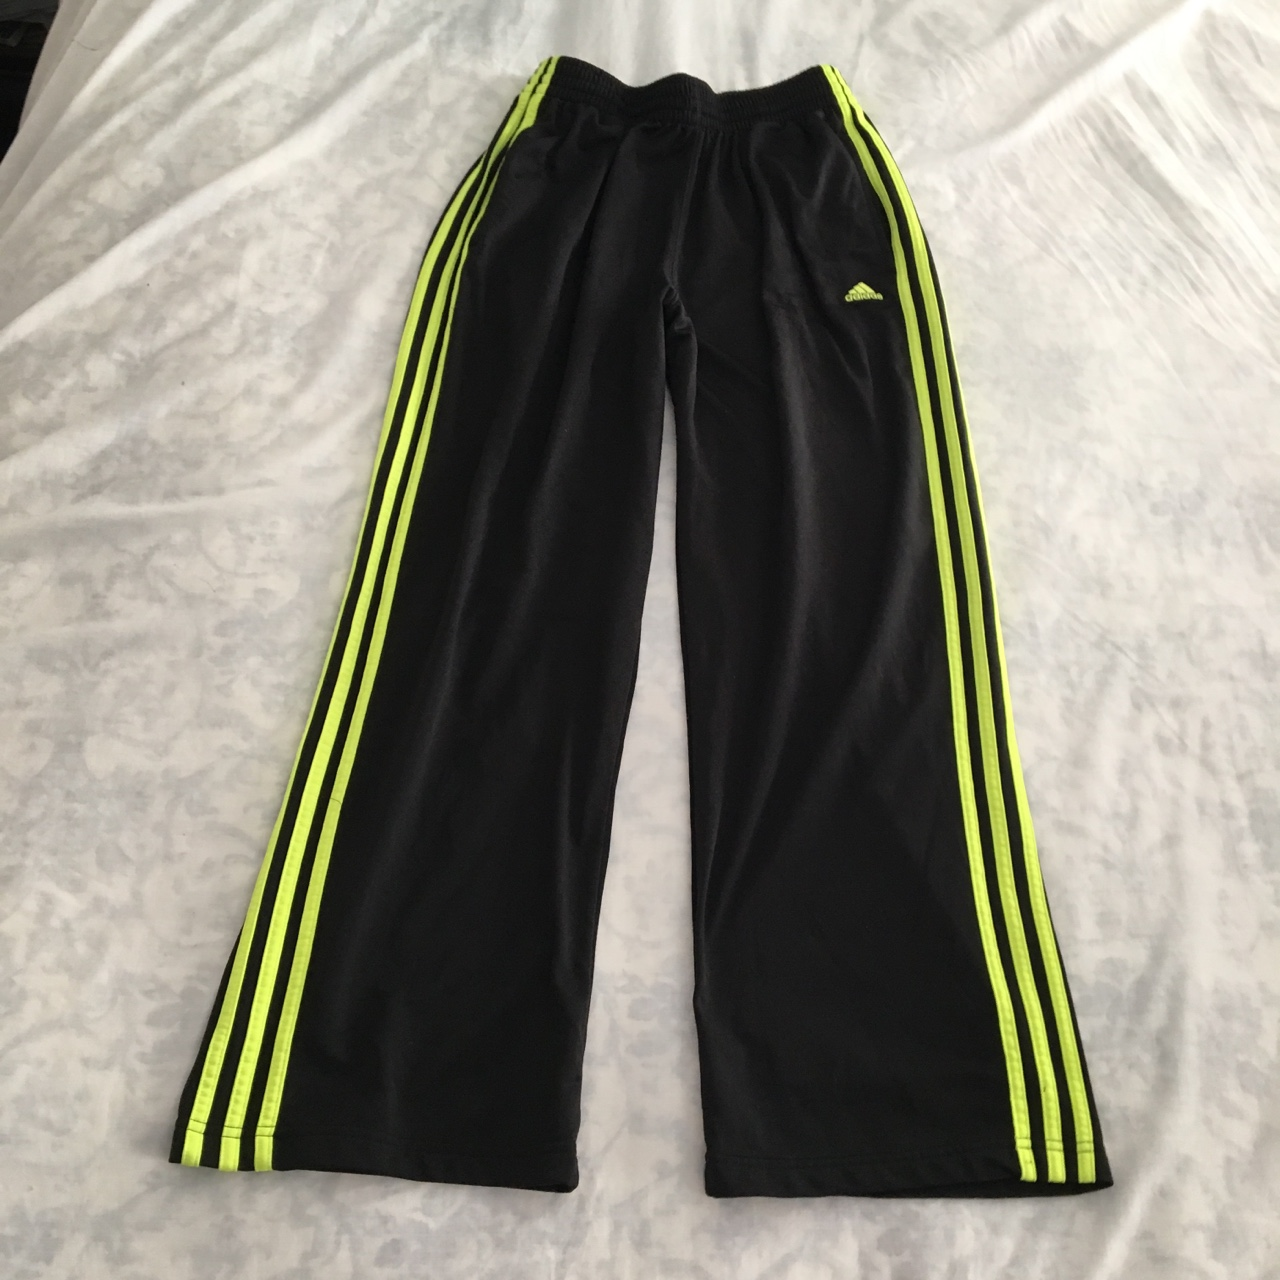 auténtica venta caliente aliexpress ahorre hasta 80% Adidas track pants in black with neon lime green... - Depop